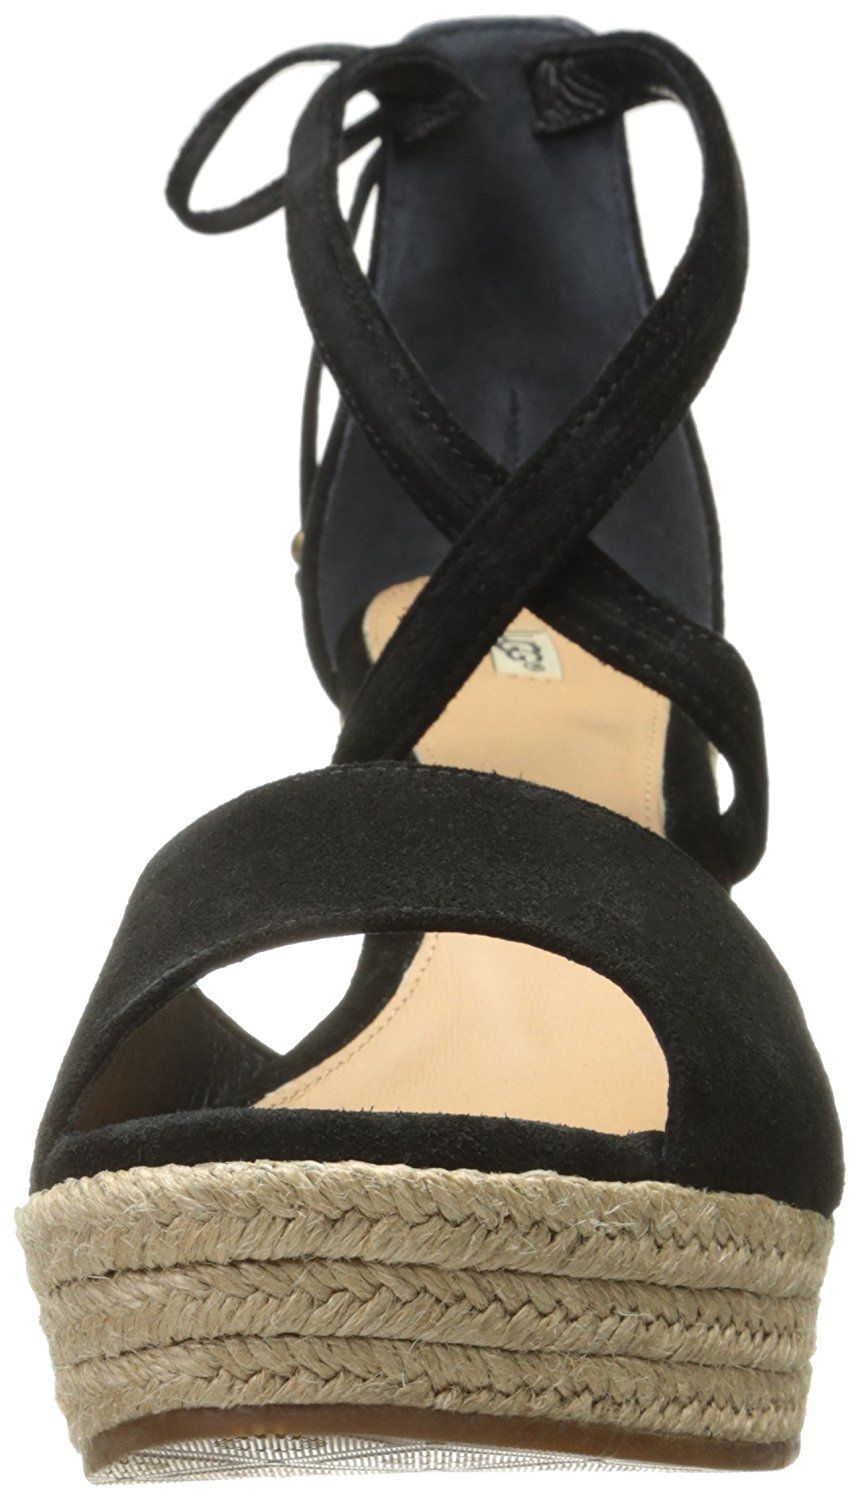 Ugg Women 39 S Reagan Wedge Sandal Want To Know More